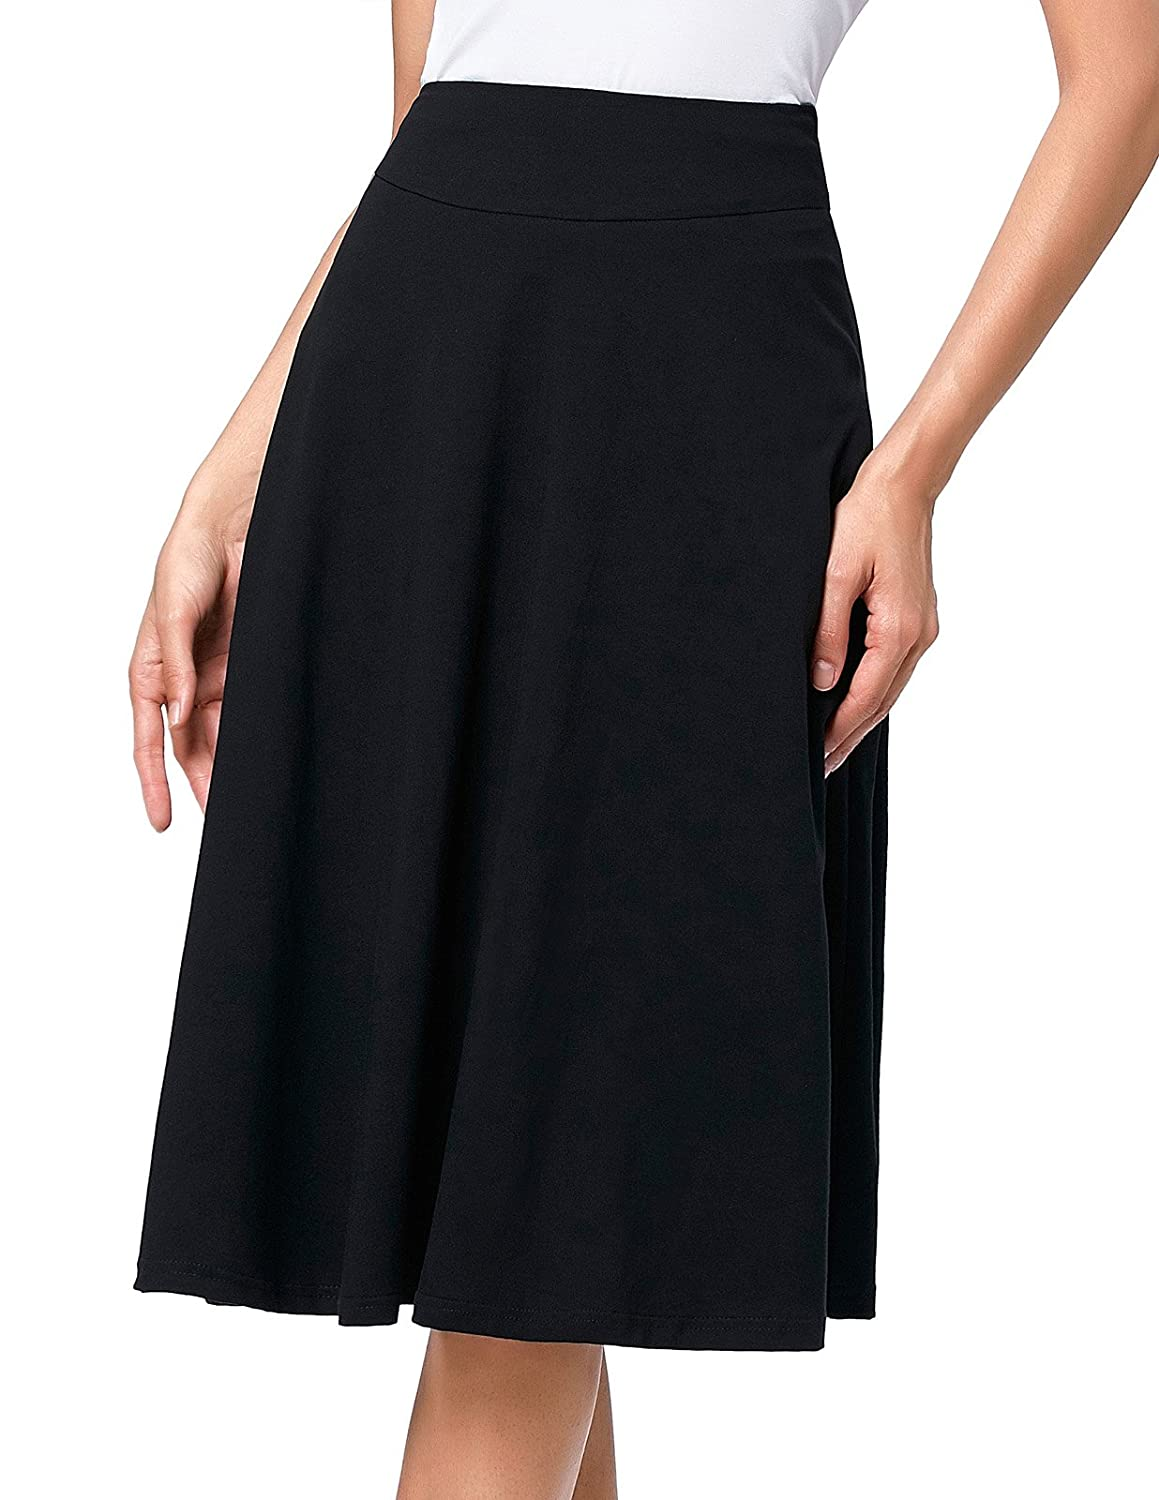 a00b800613 Kate Kasin Flared Stretchy Midi Skirt High Waist Jersey Skirt for Women at  Amazon Women's Clothing store: